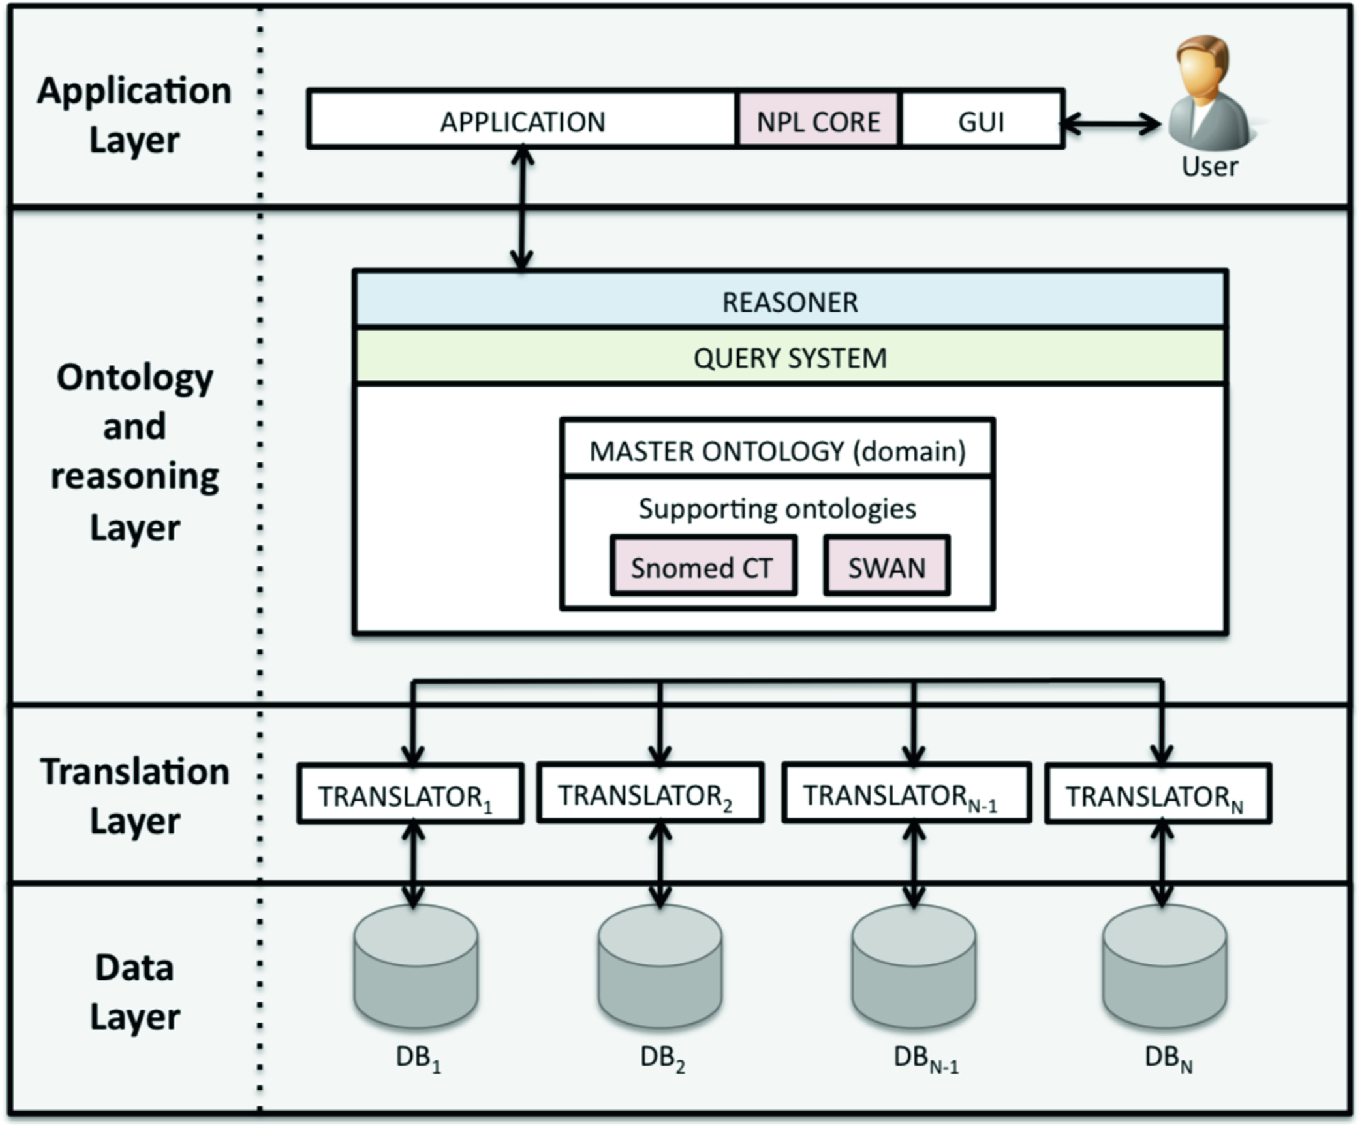 Experience Based Clinical Decision Support Systems: An Overview ...